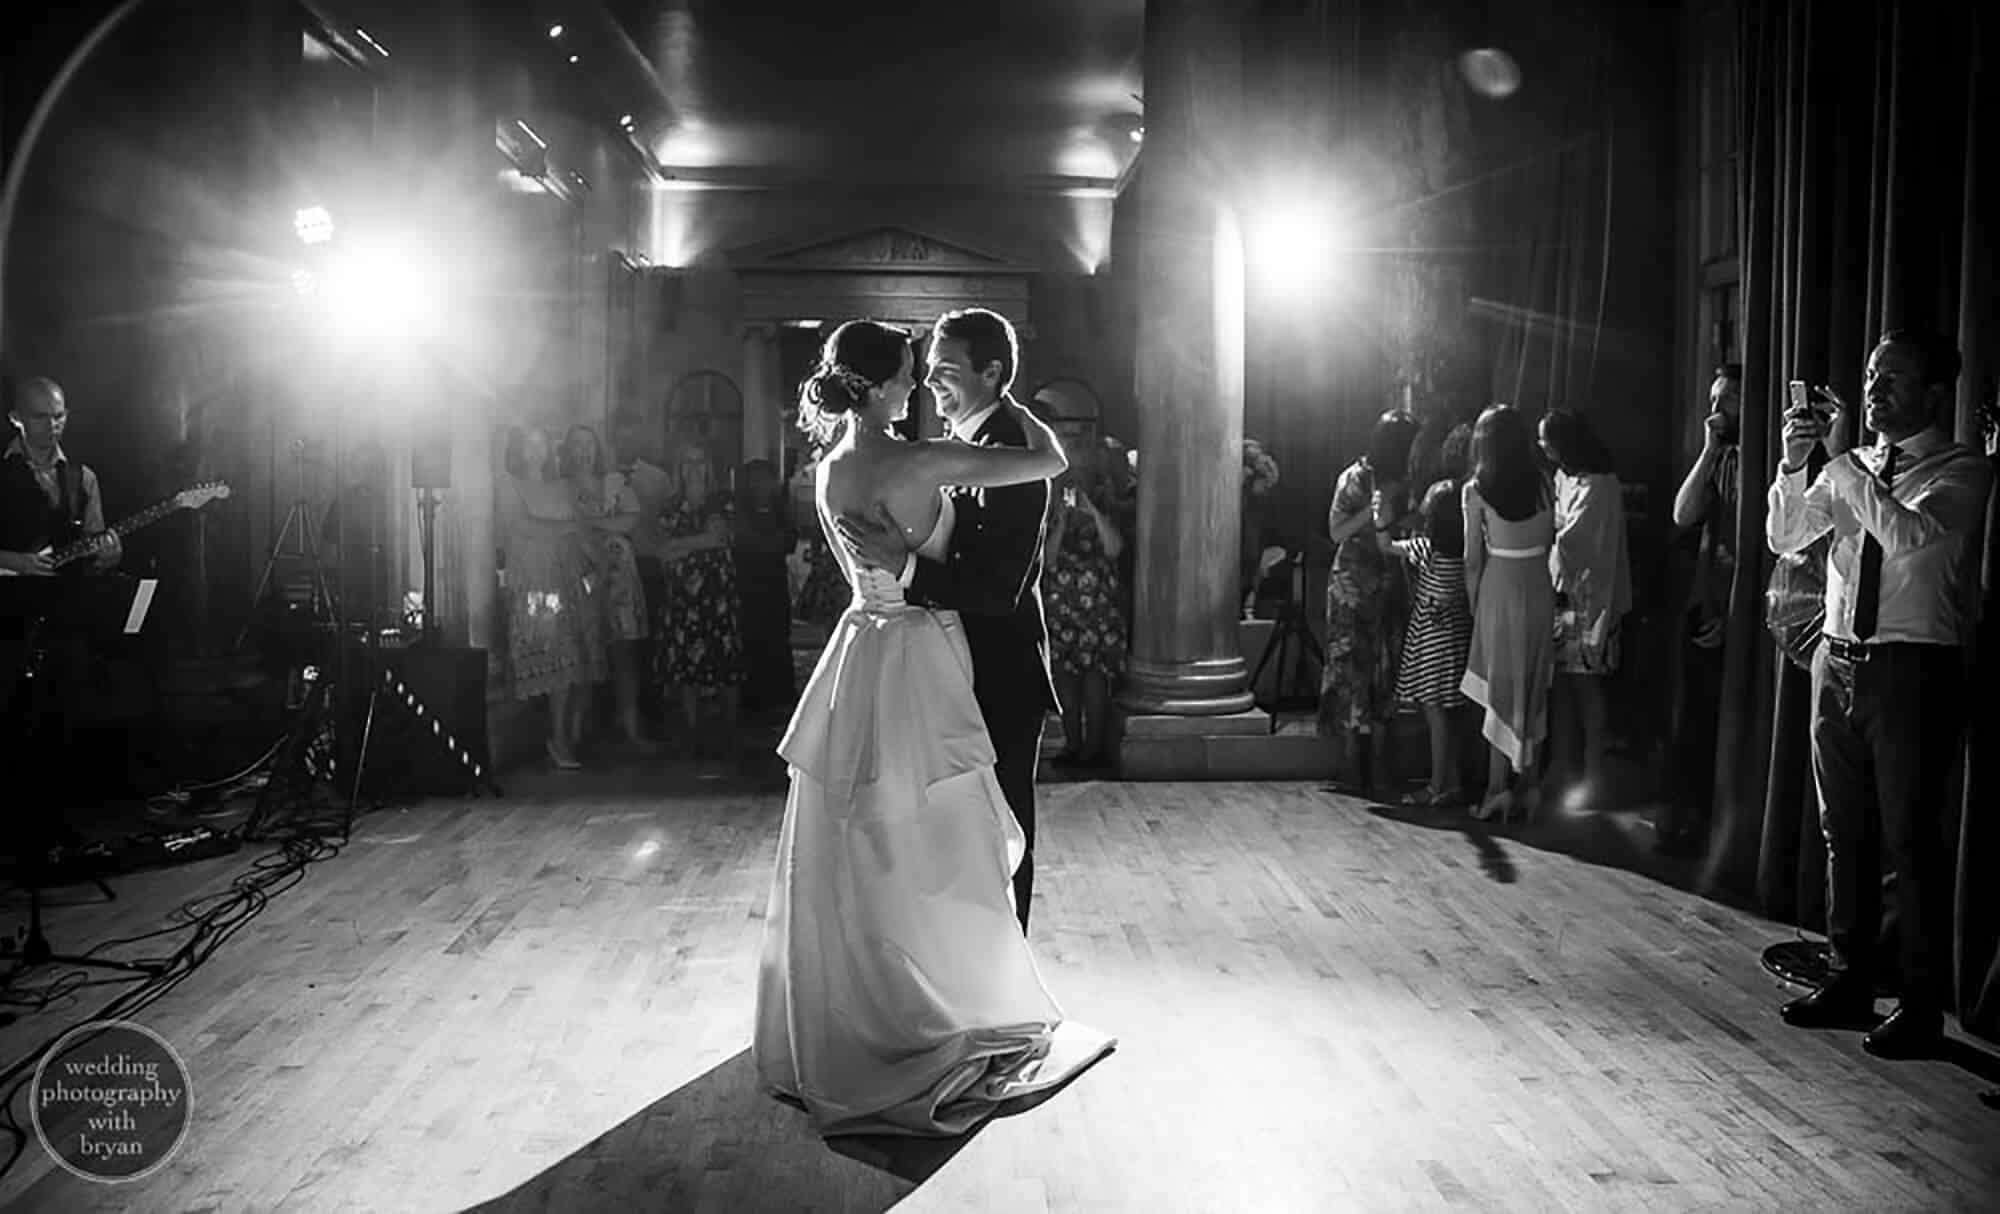 Is Wedding Photography Expensive?